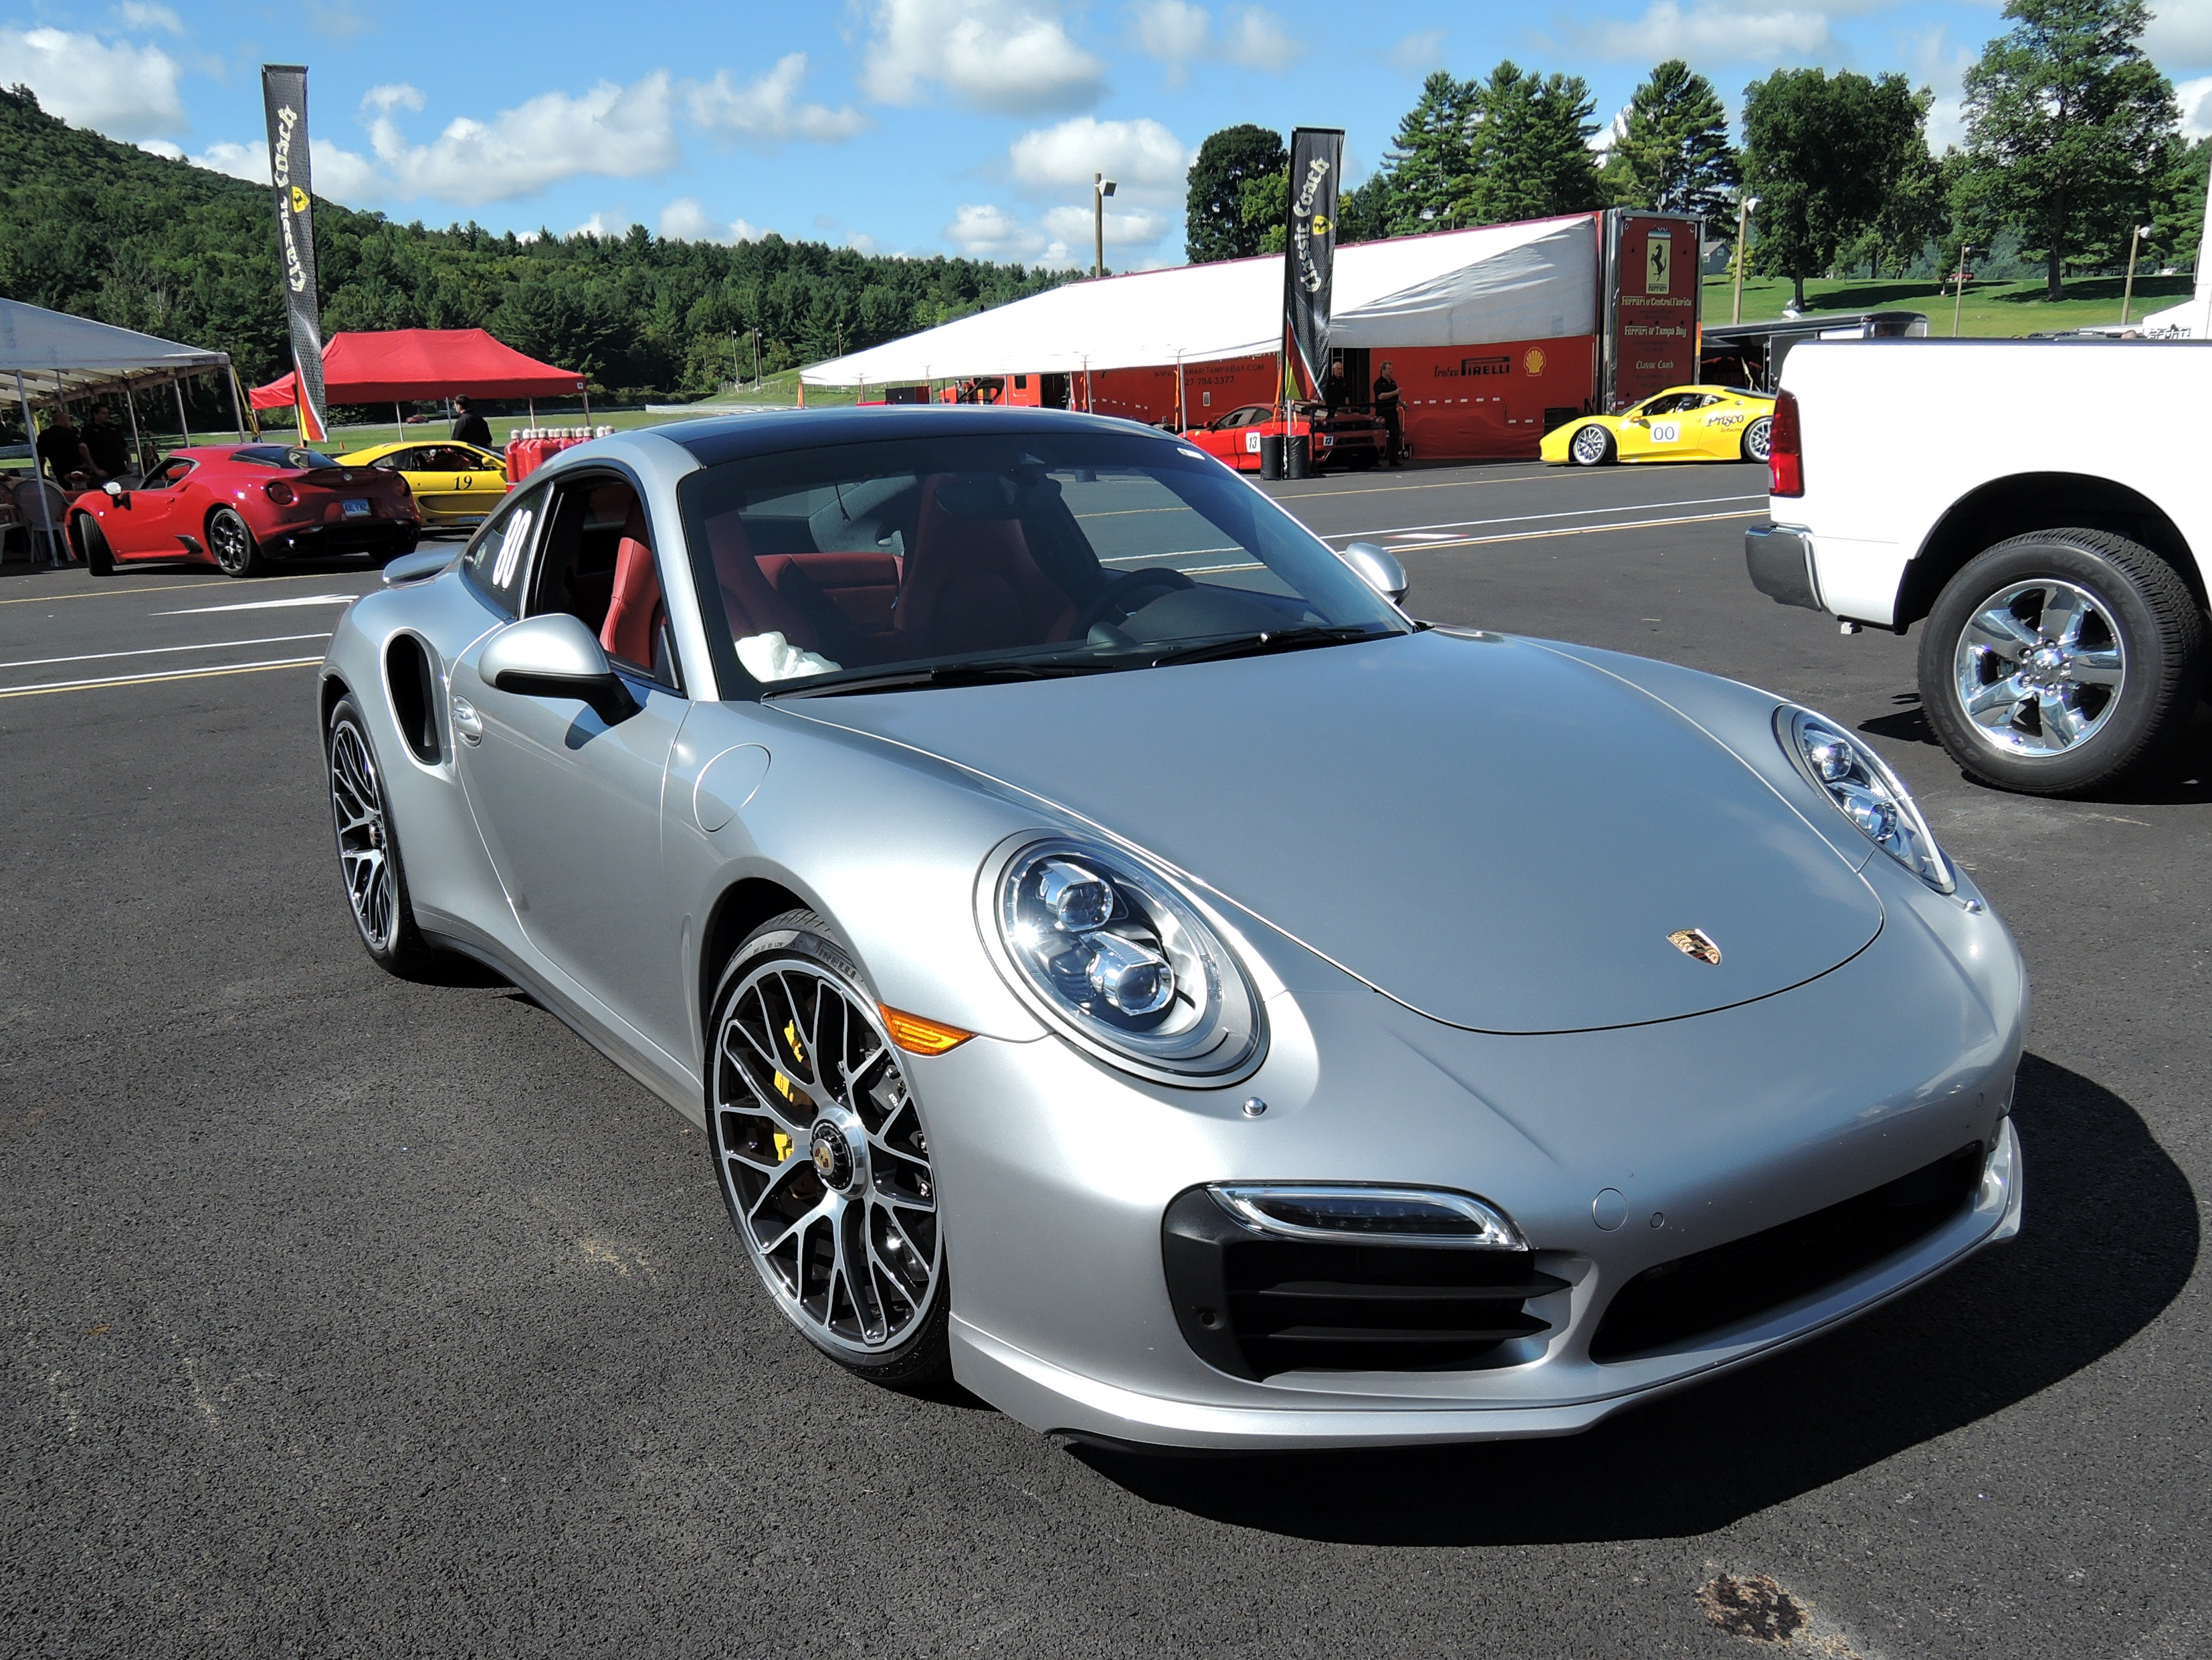 silver Porsche 911 Turbo S - lime rock park